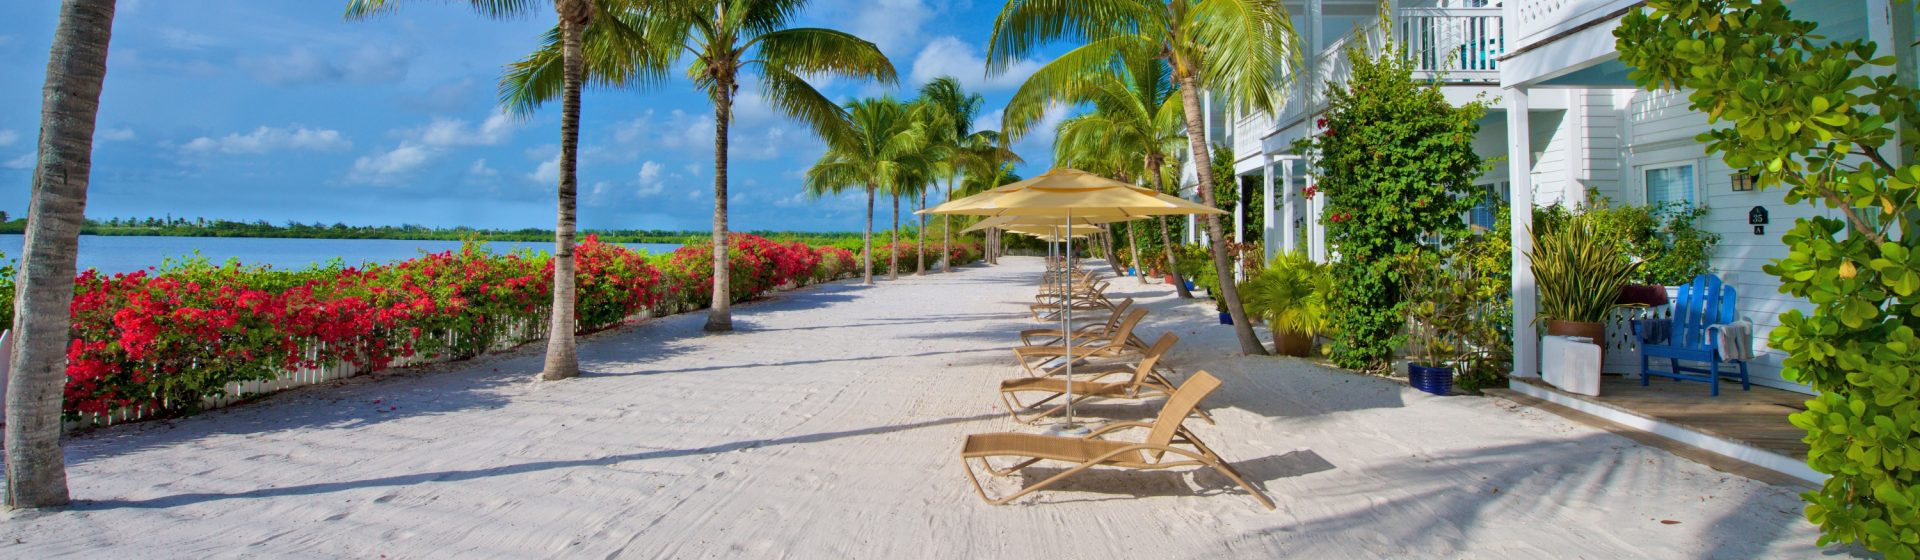 Key West Destination Weddings Amp Packages